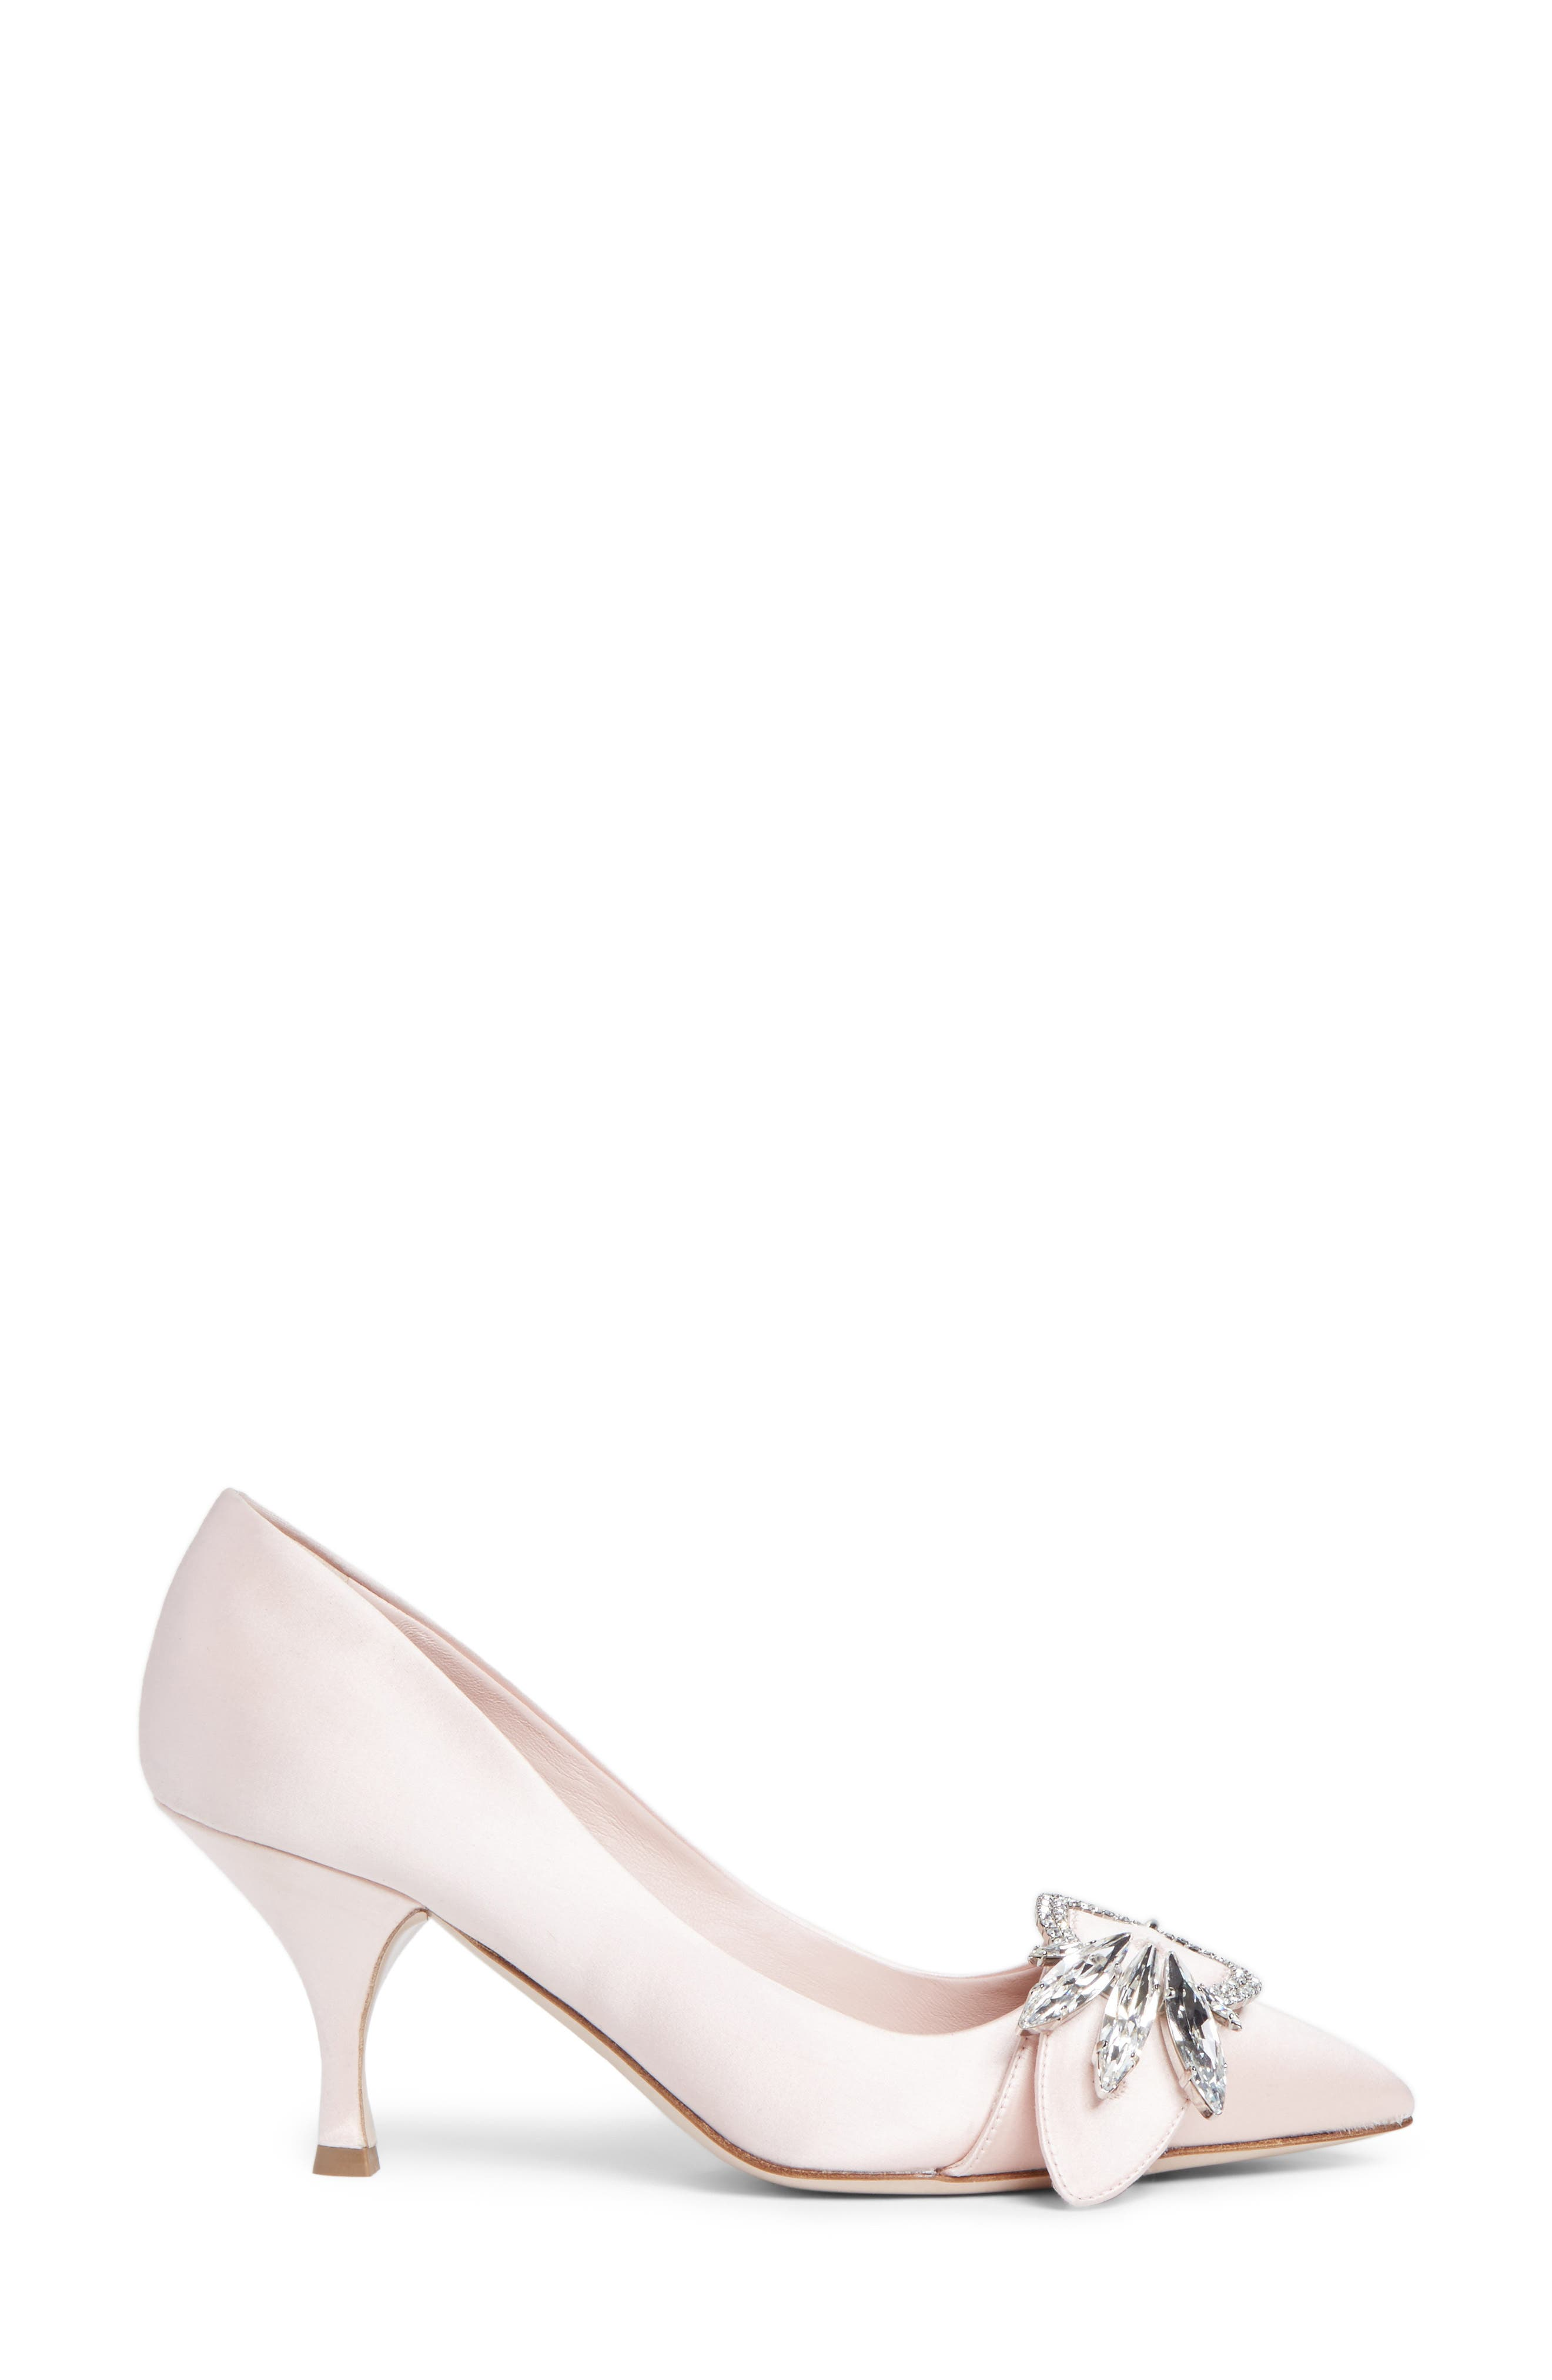 Crystal Buckle Pump,                             Alternate thumbnail 3, color,                             Pink Satin